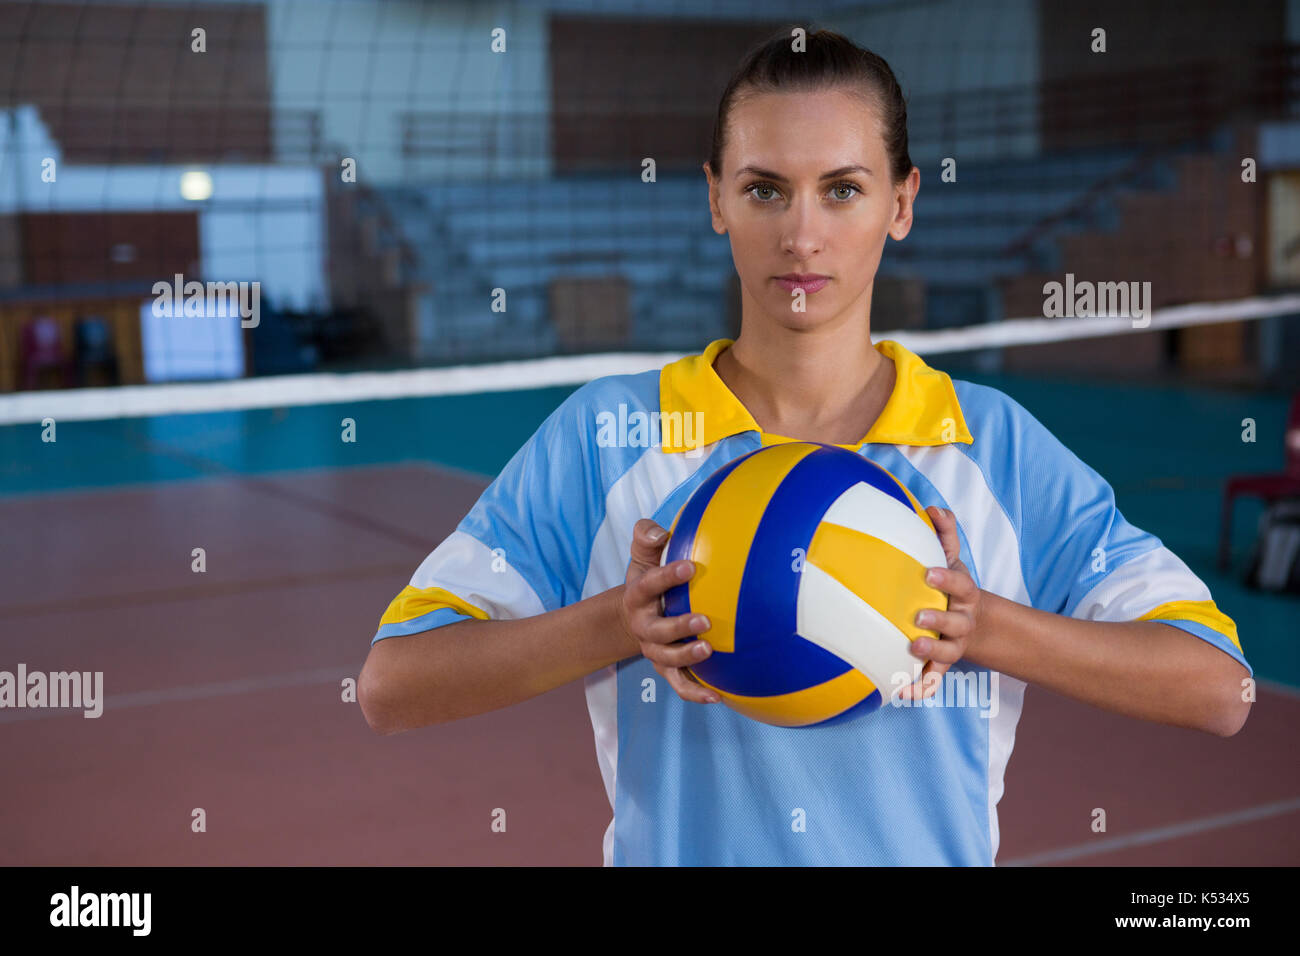 Portrait of young female sportsperson holding volleyball - Stock Image